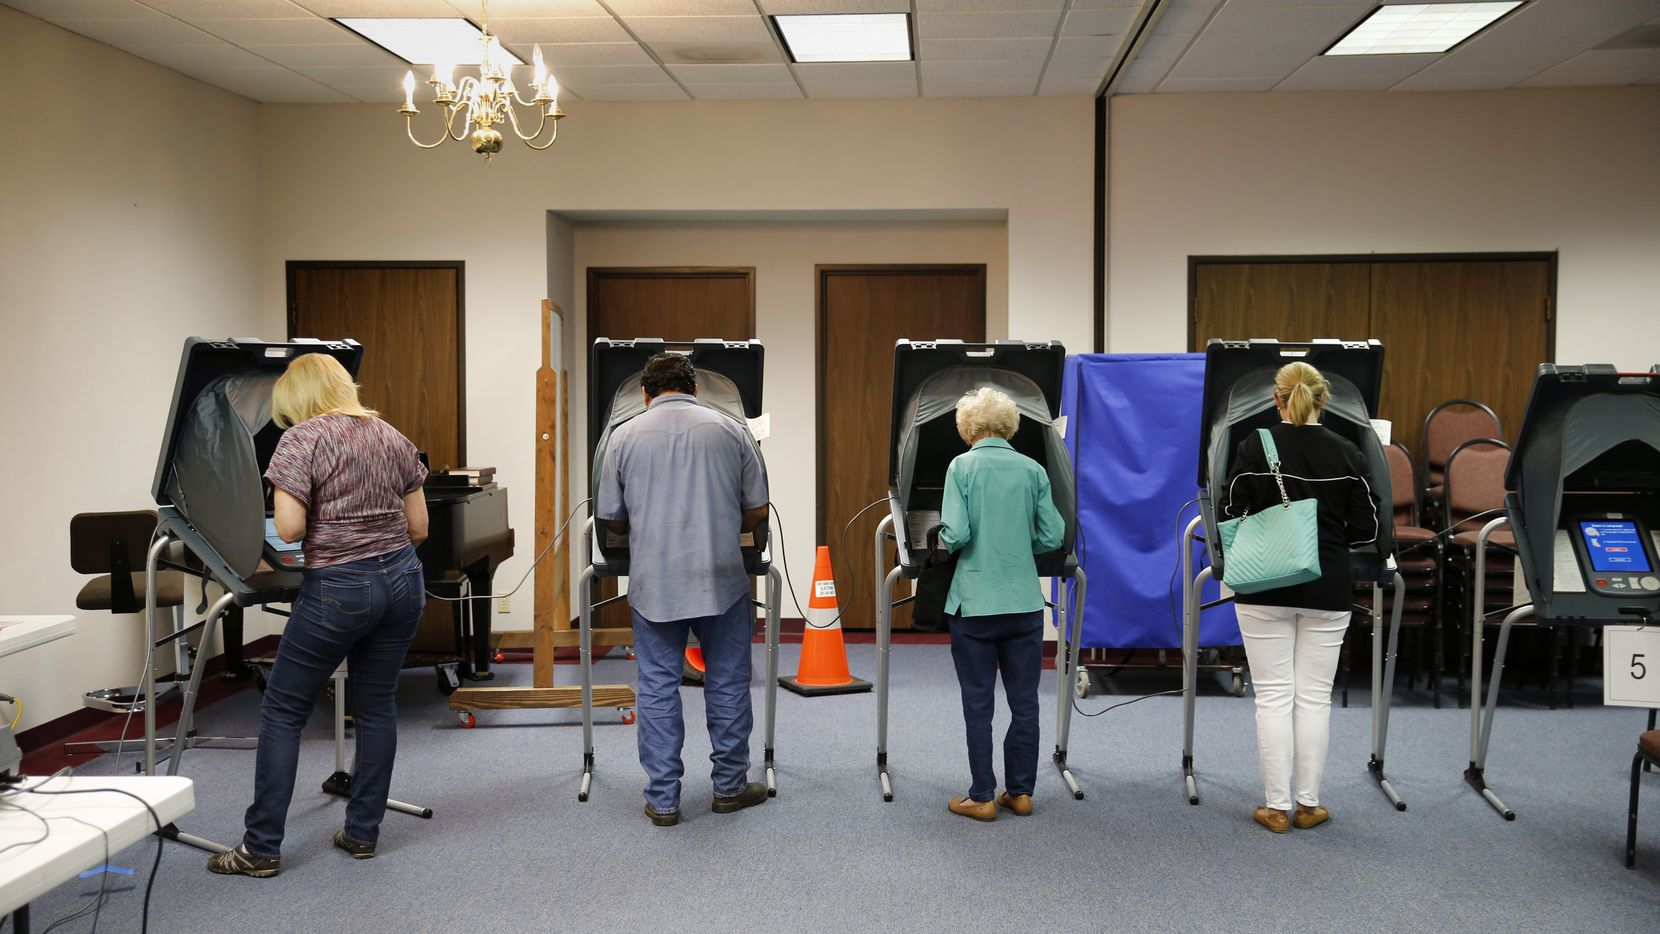 Texas voters cast their ballots on March 1. Two Houston lawmakers are calling for an investigation into long voting lines. (Erich Schlegel/Getty Images)